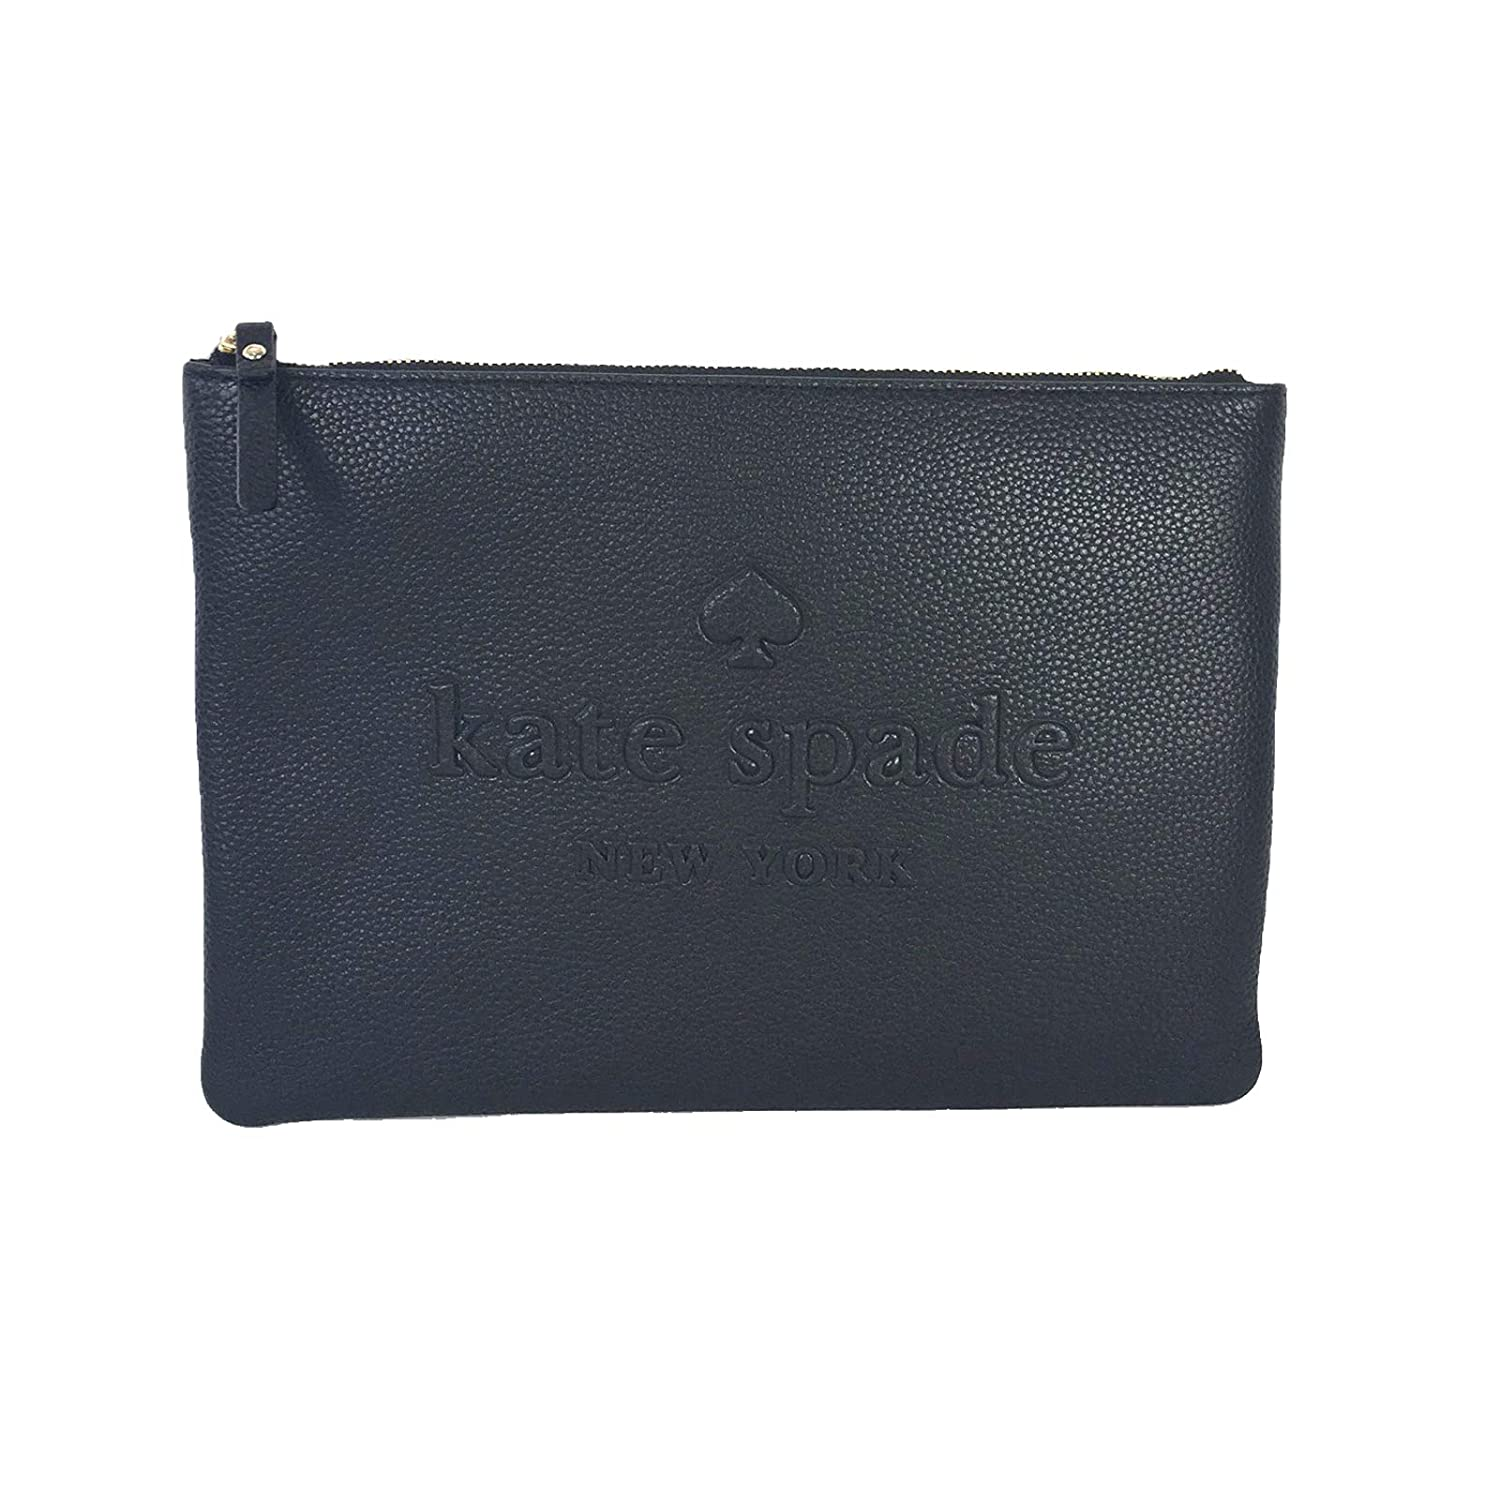 Kate Spade Gia Large Pouch Soft Pebbled Leather Logo Embossed Clutch Bag Black